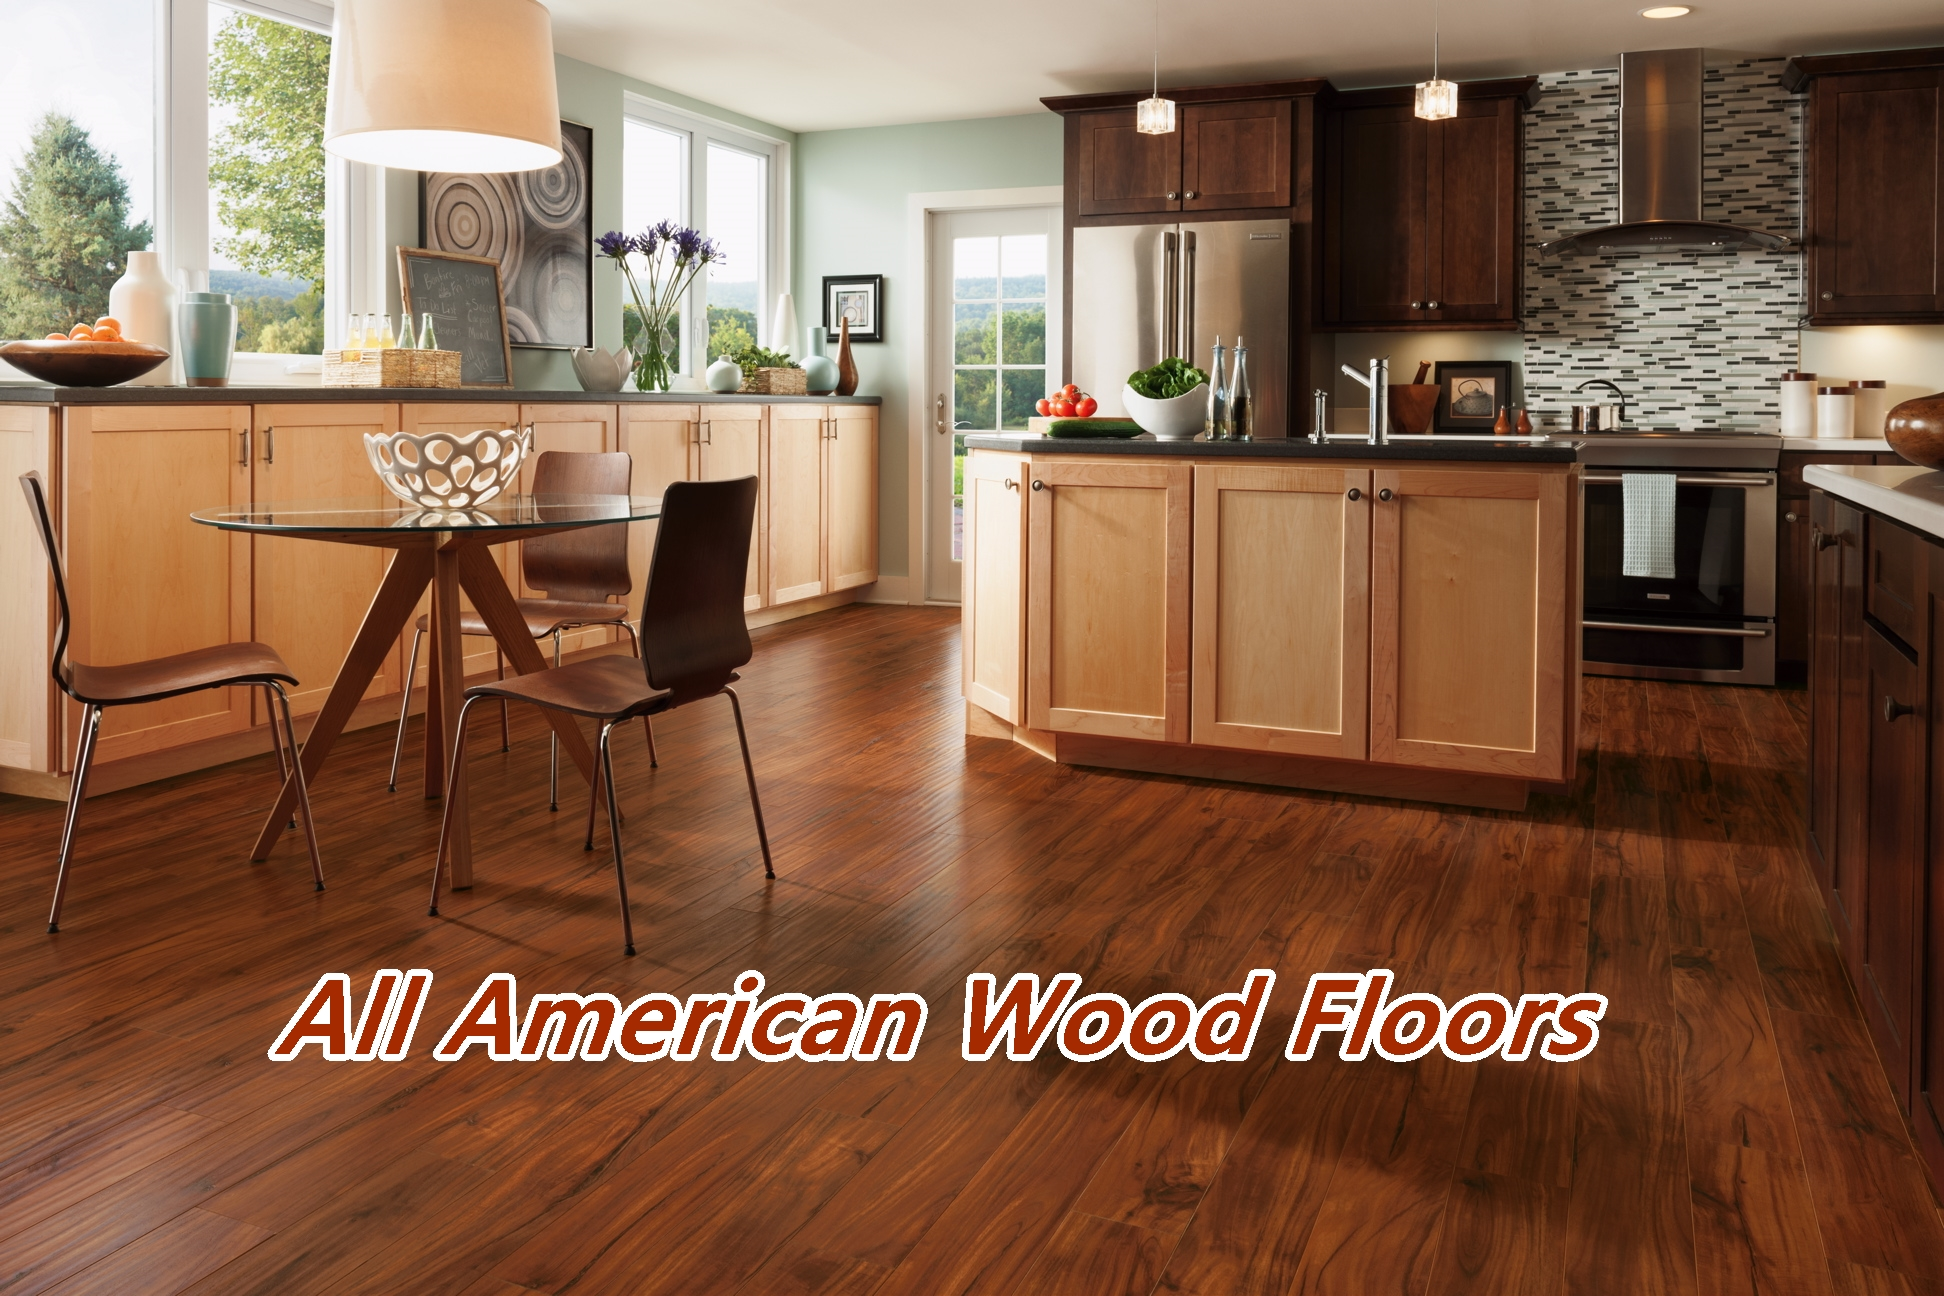 Wood Floor In The Kitchen All American Wood Floors Orlando Winter Park Melbourne Hardwood